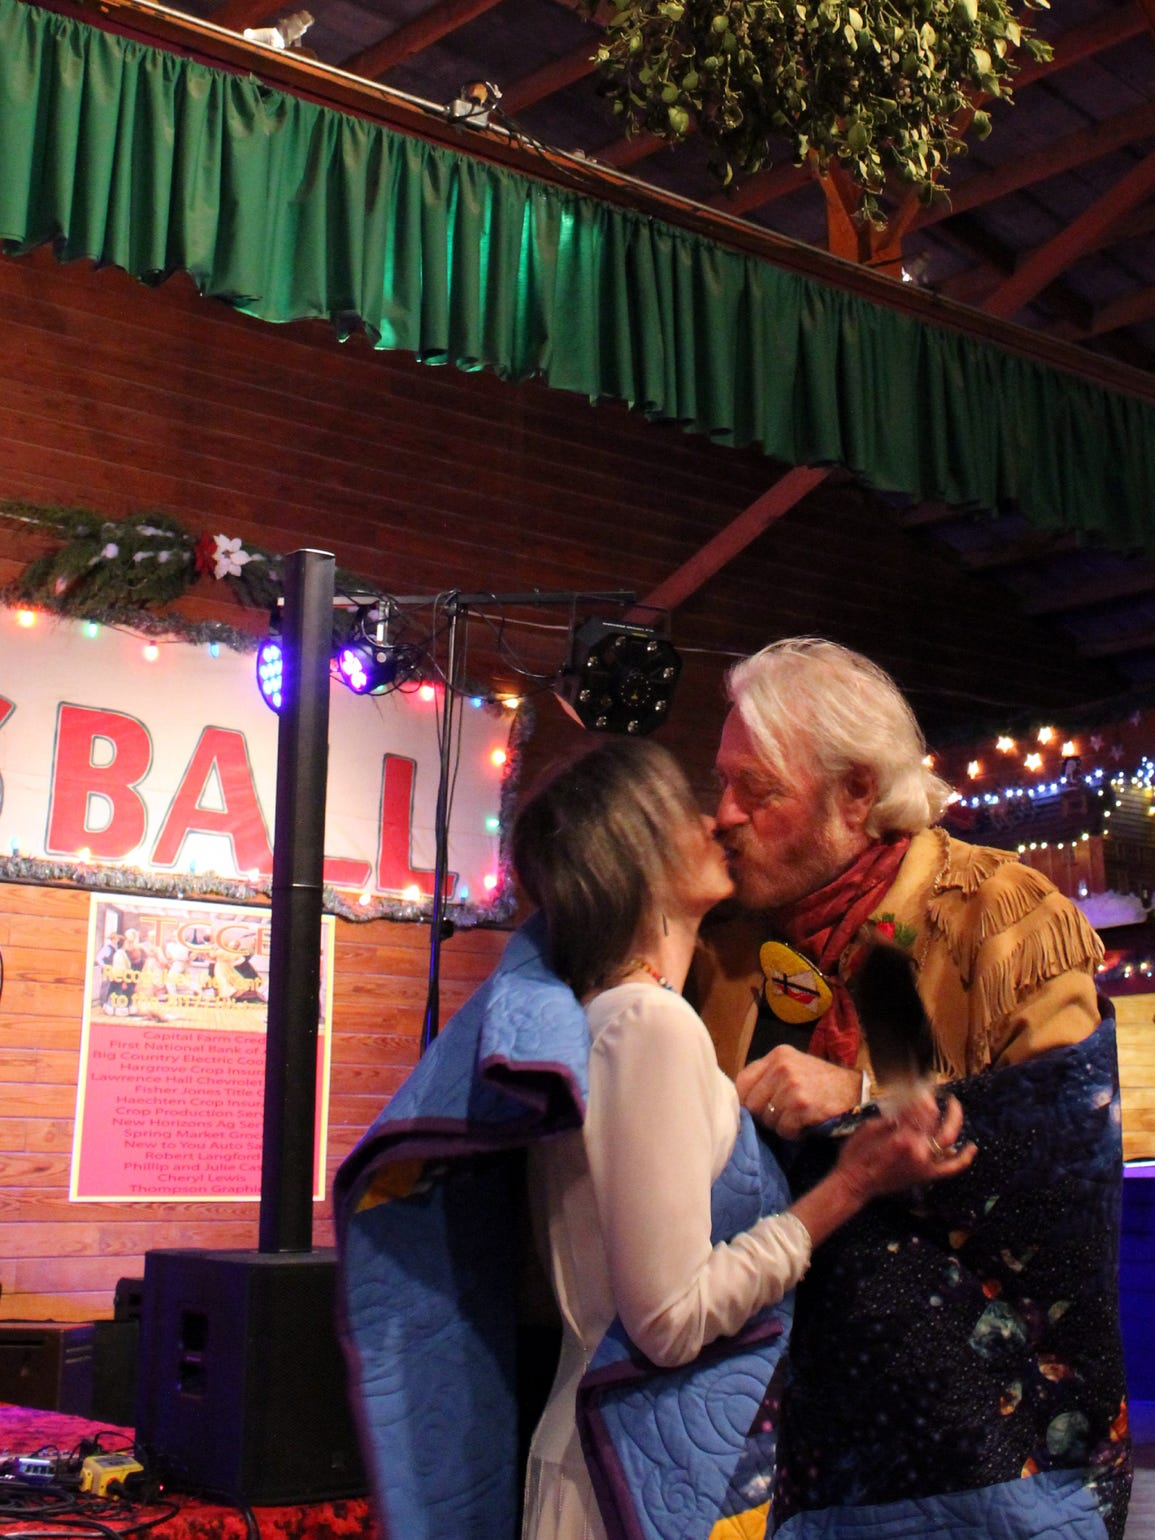 Newlyweds Cynthia Tune and Michael Martin Murphey kiss,